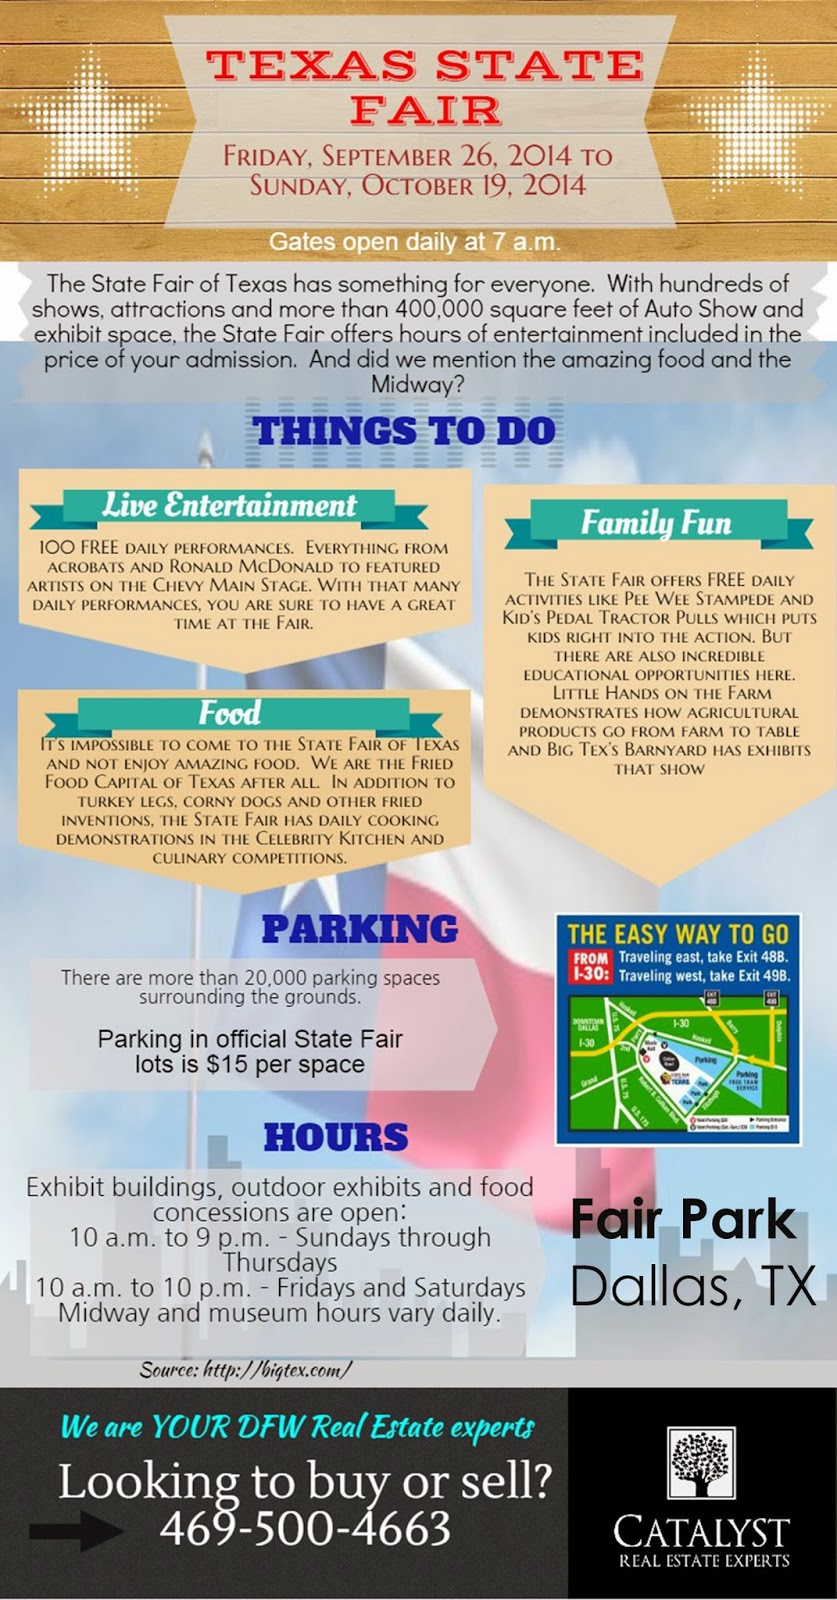 texas state fair hours dates, visit texas state fair 2014 this year, catalyst real estate experts texas state fair 2014 september, best fair in dallas, dallas fort worth entertainment, festival dfw 2014, big texas state fair schedule things to do parking